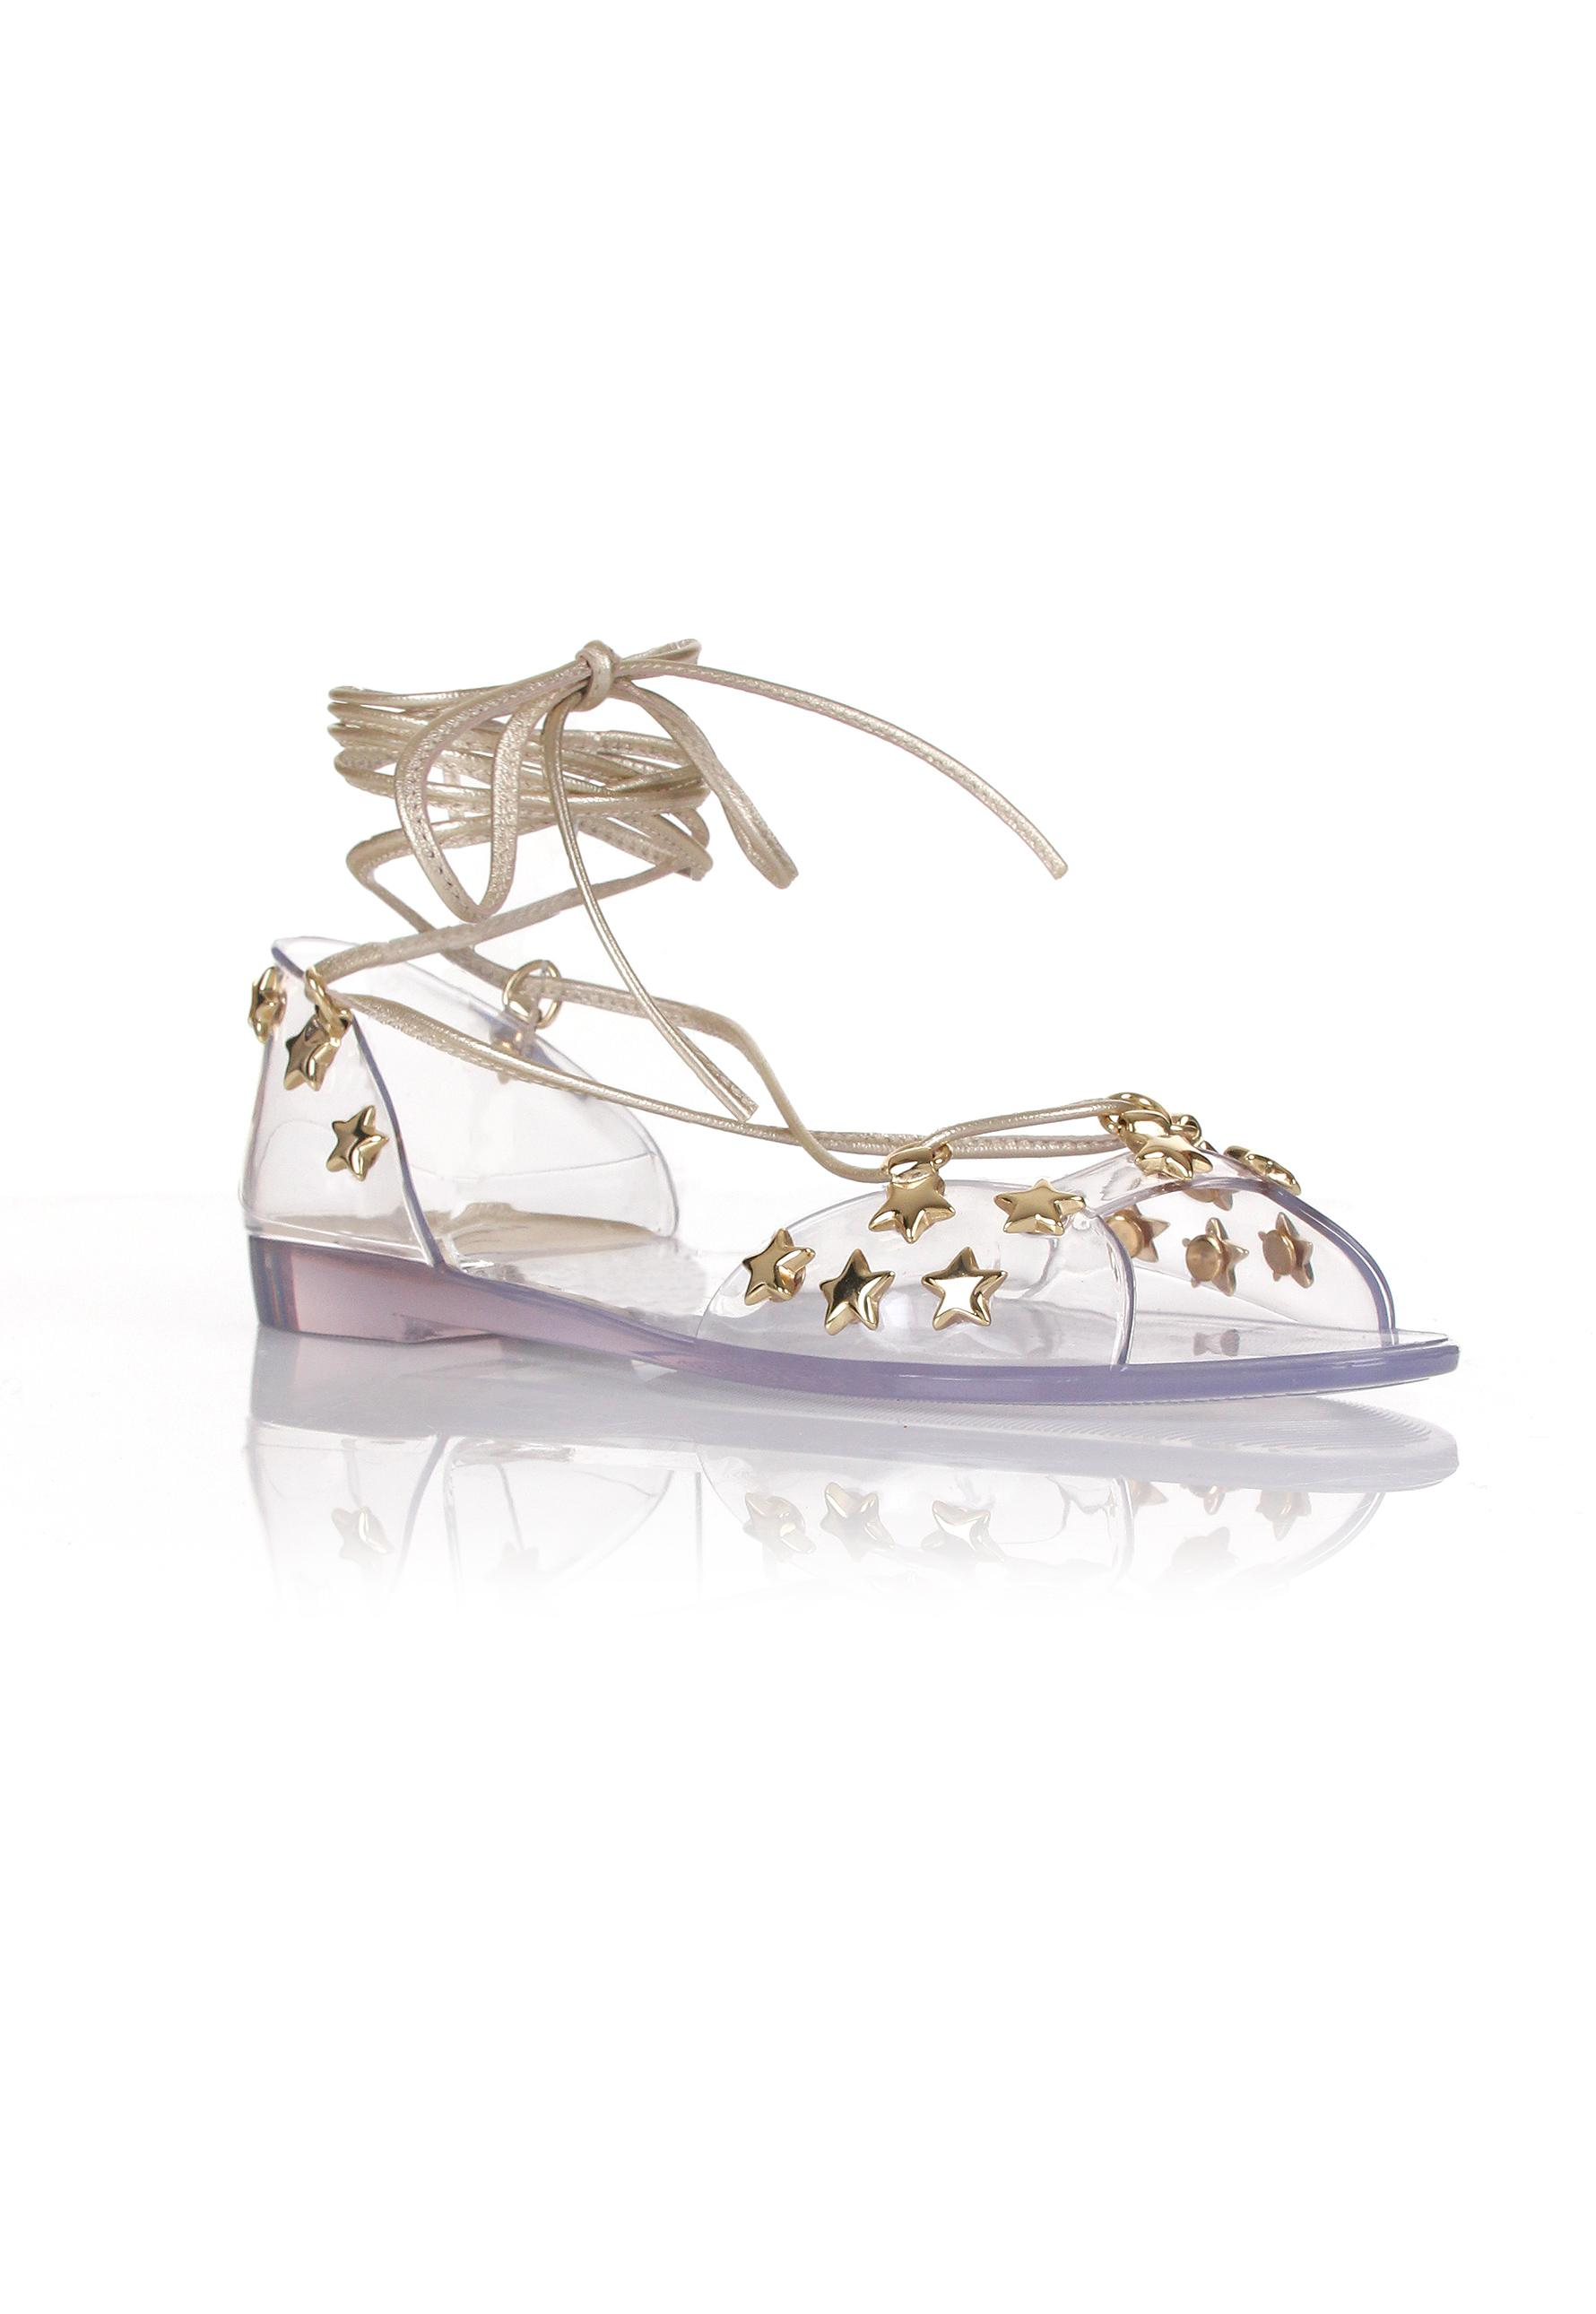 775fab55a7ea Lyst - Stuart Weitzman Jelly Glass Noodles Star Sandals Clear gold ...